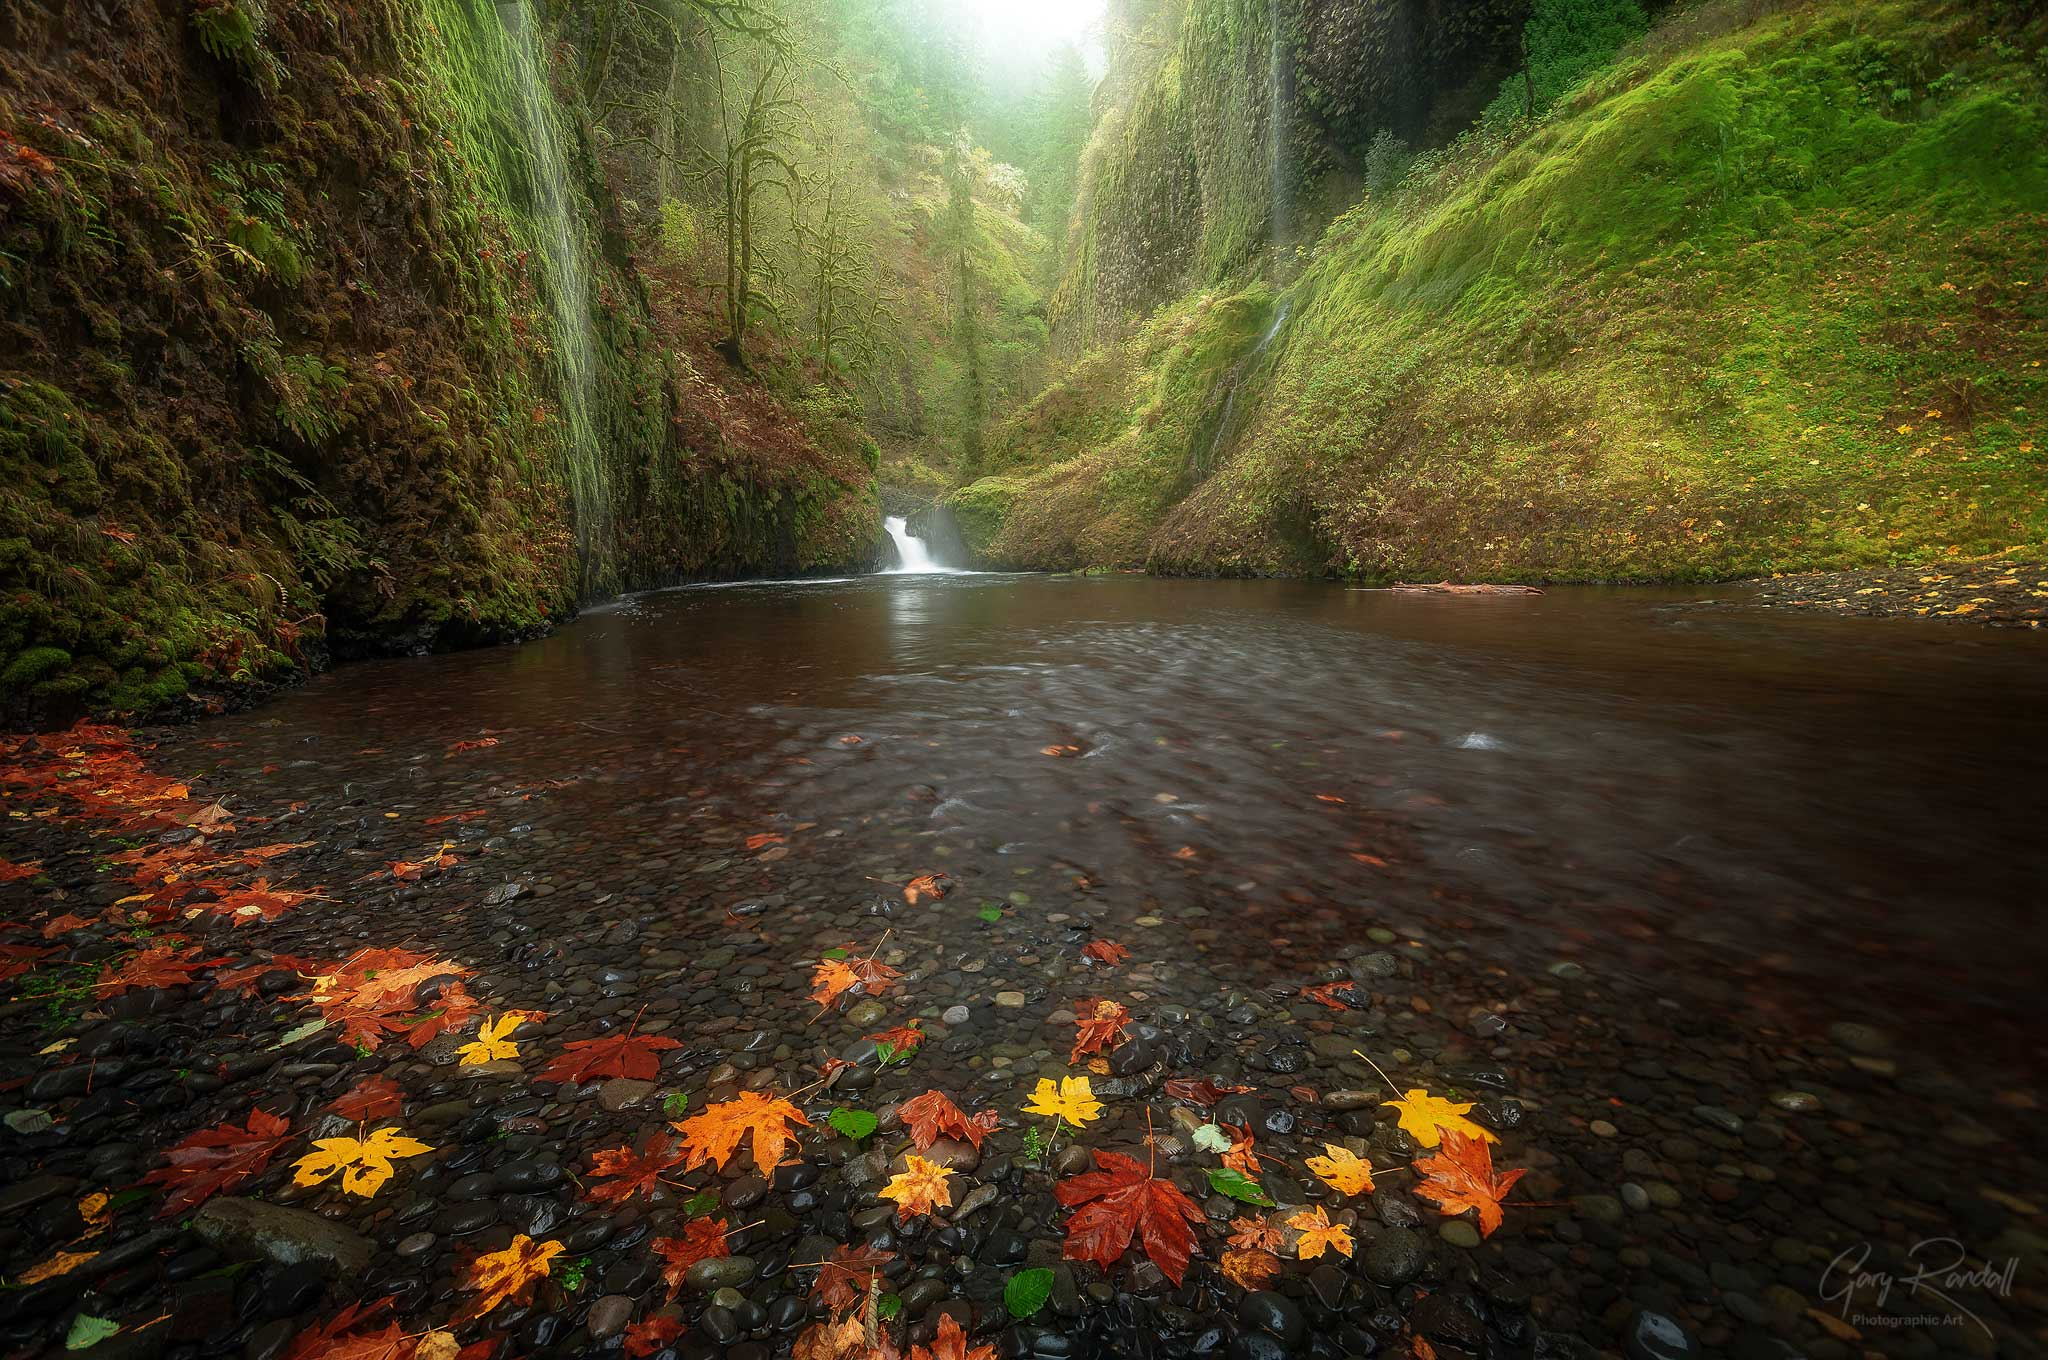 Weeping Walls Columbia River Gorge, Oregon